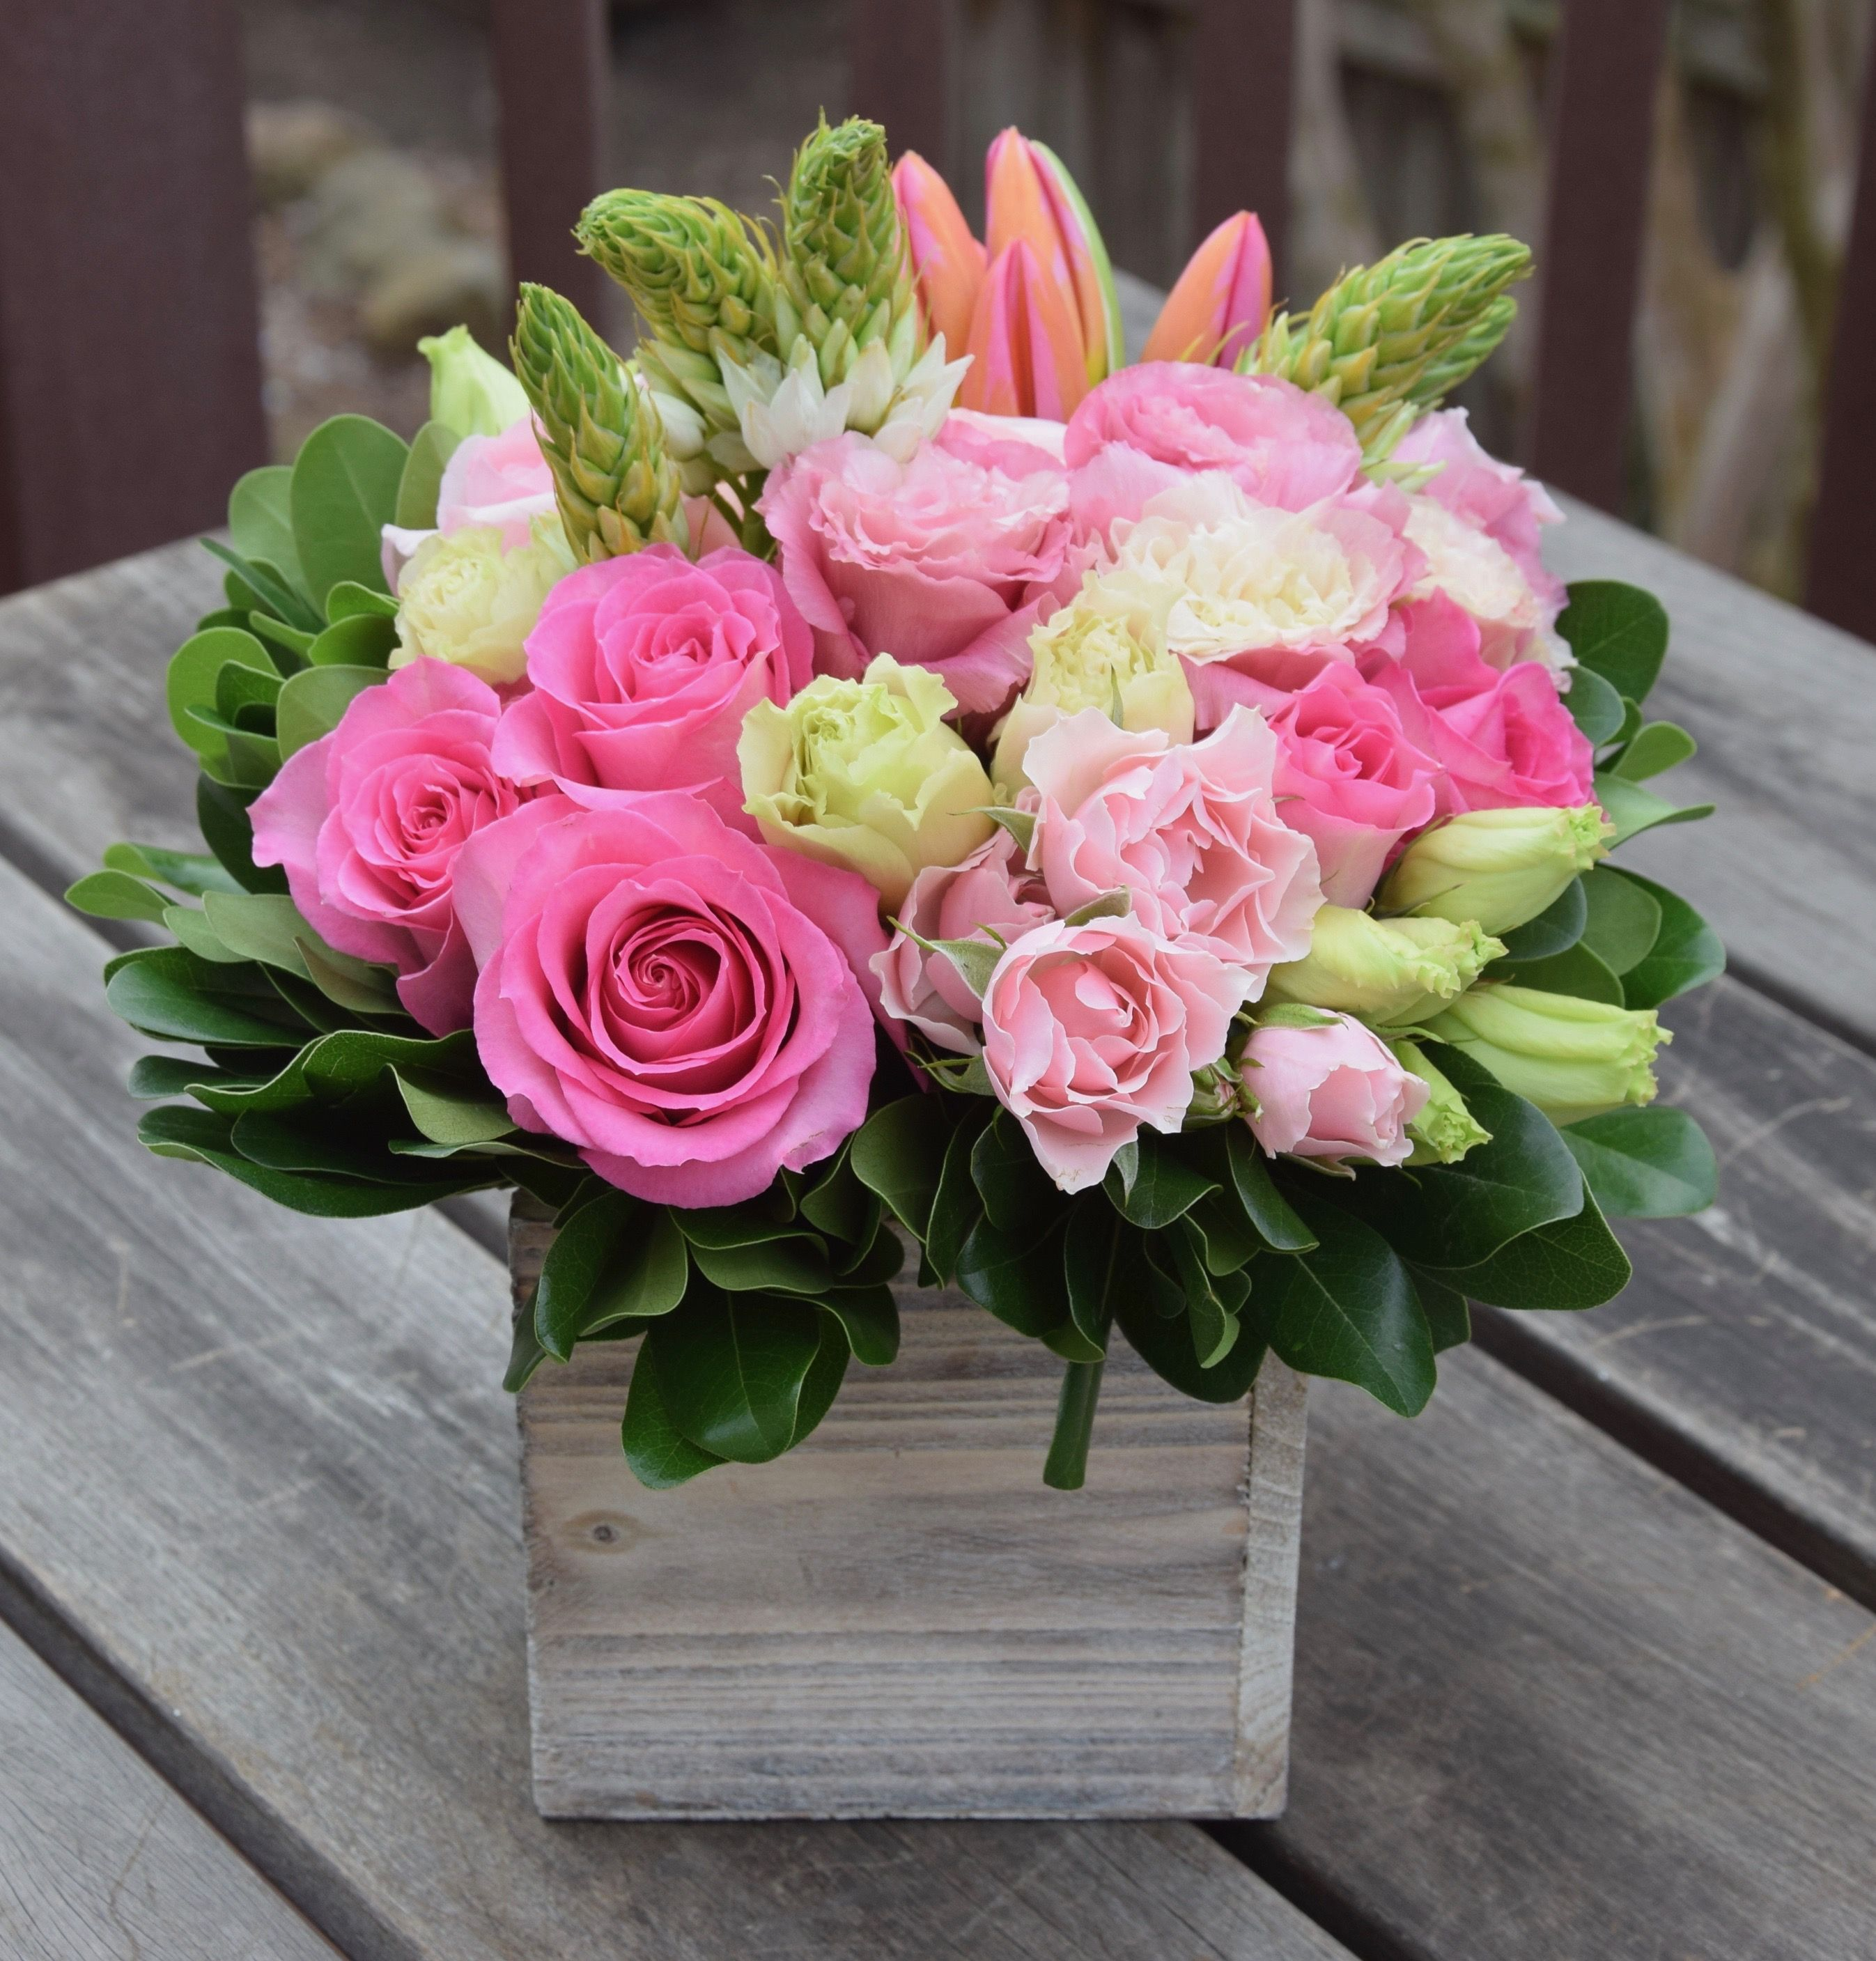 Floral Gift Box With Roses Spray Roses Lisianthus Star Of